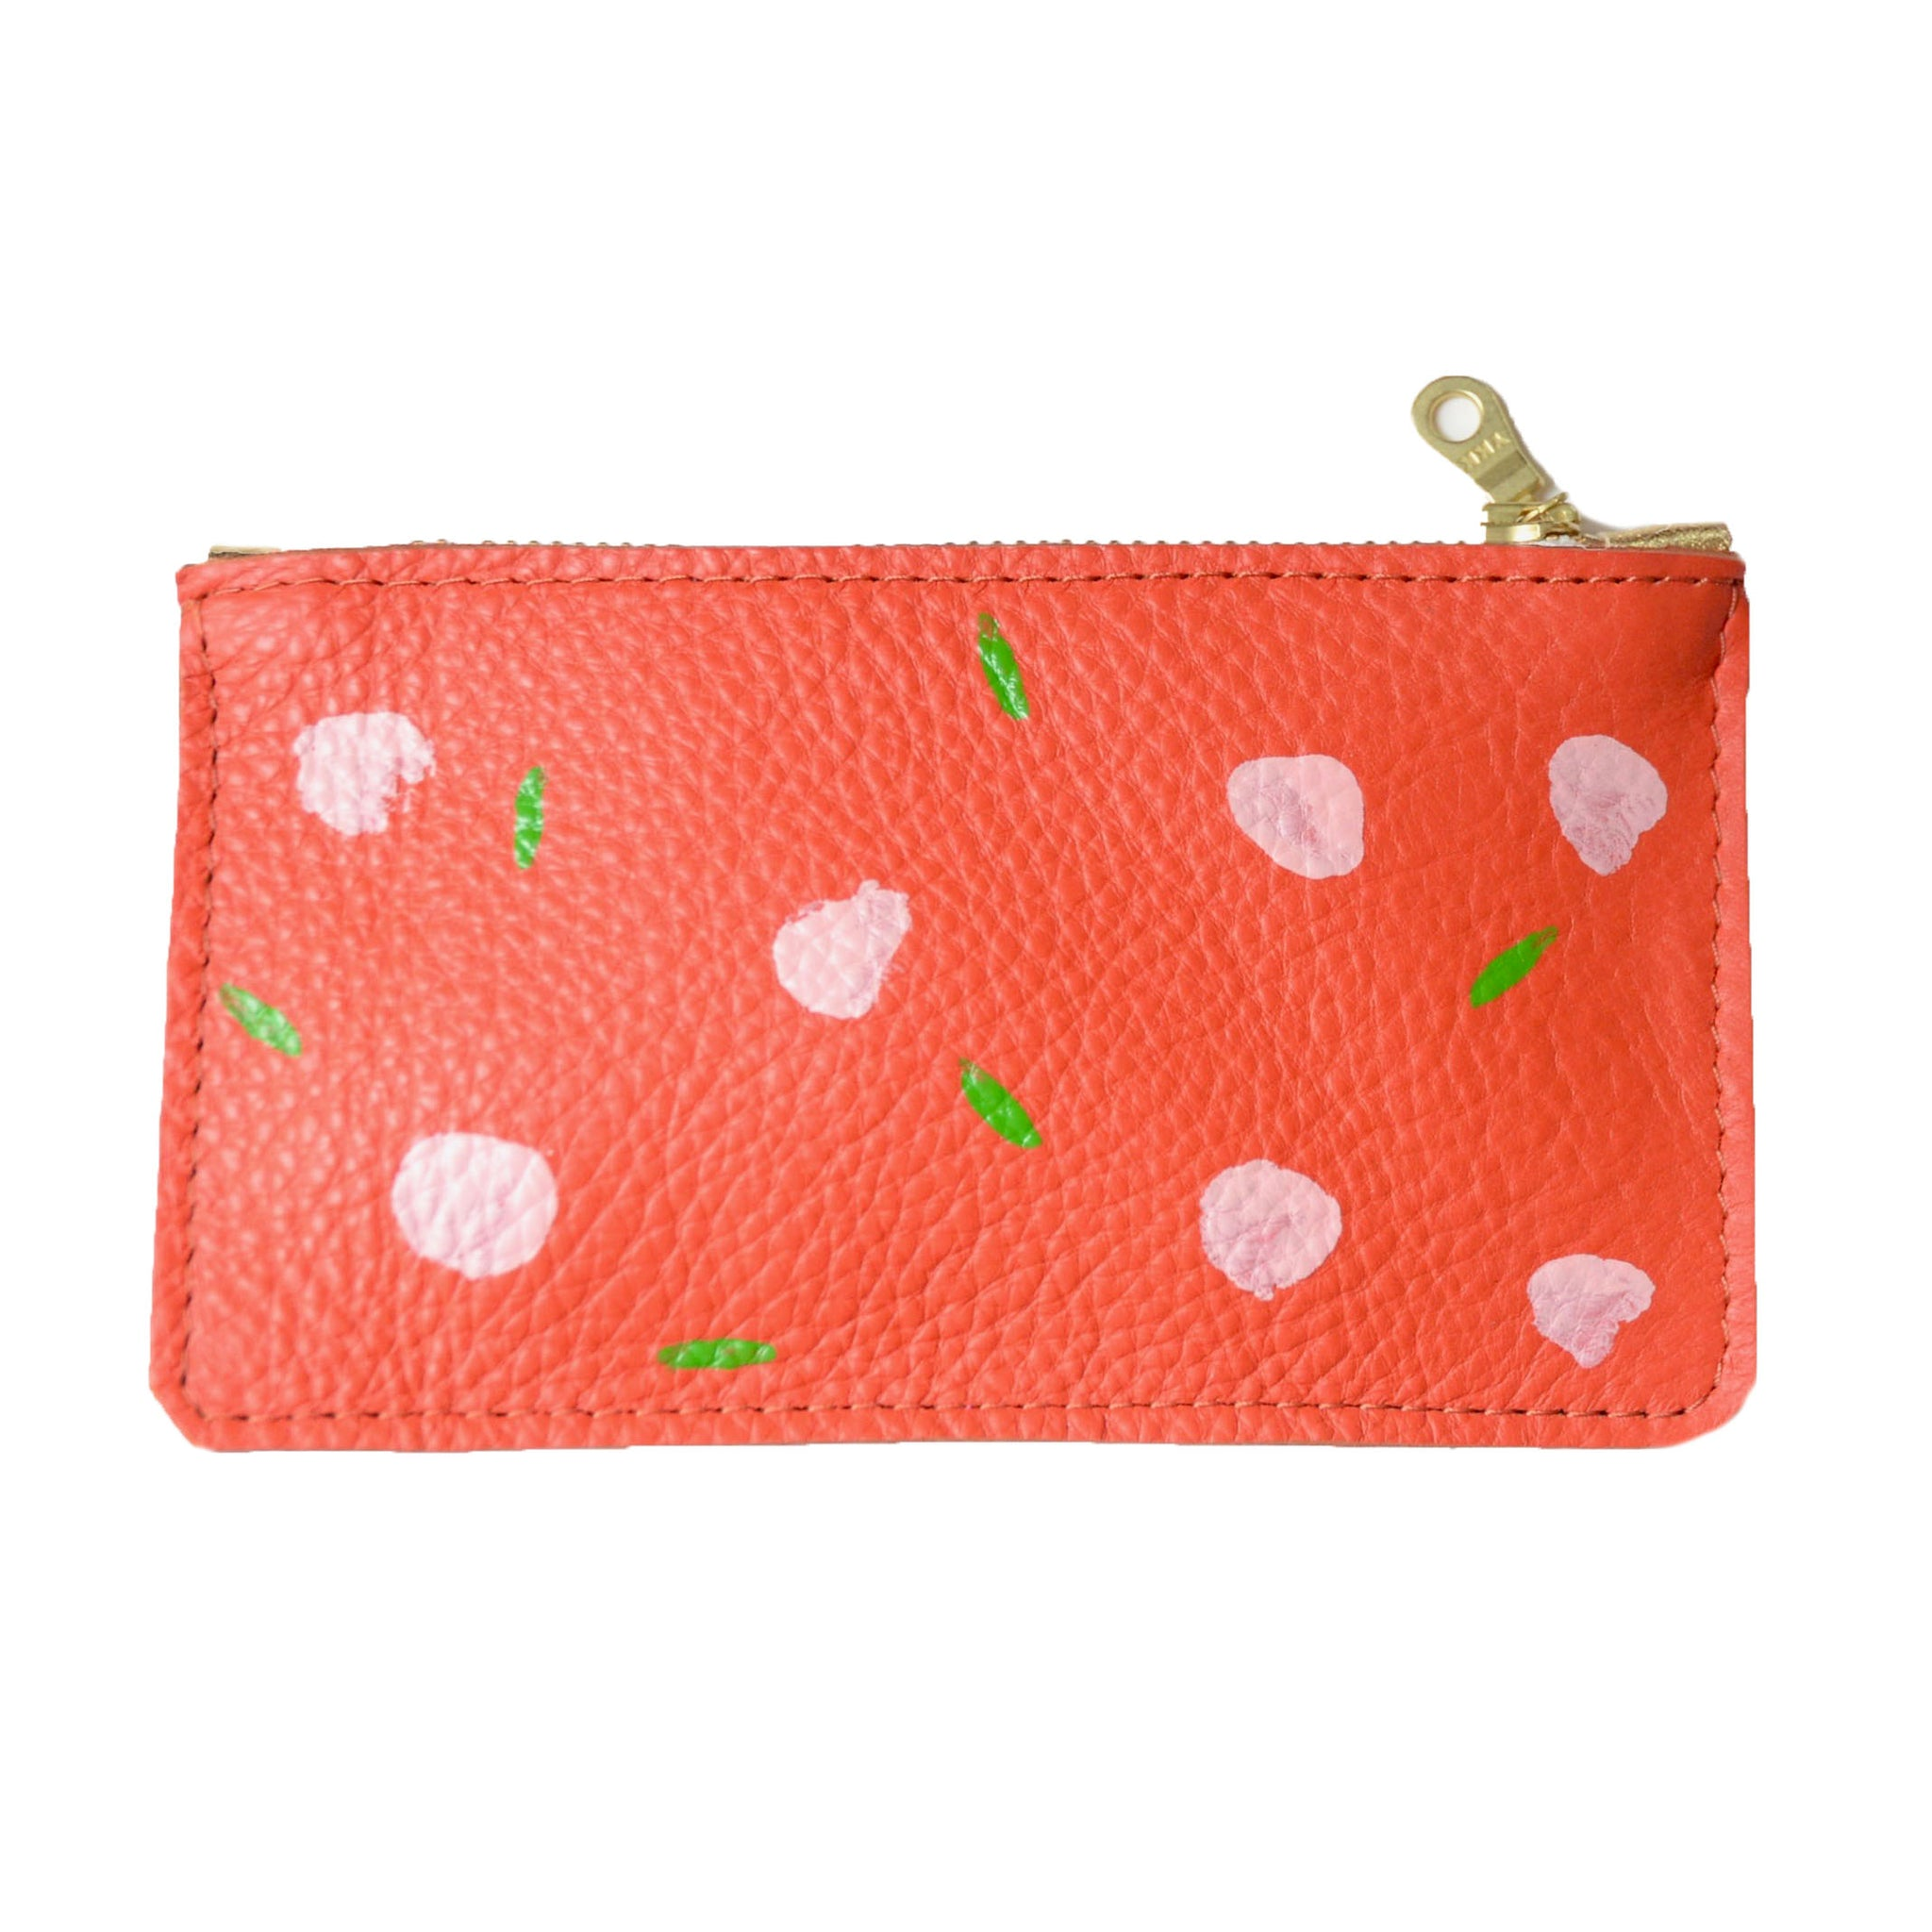 hand painted leather mini zip: tangerine with pink and green